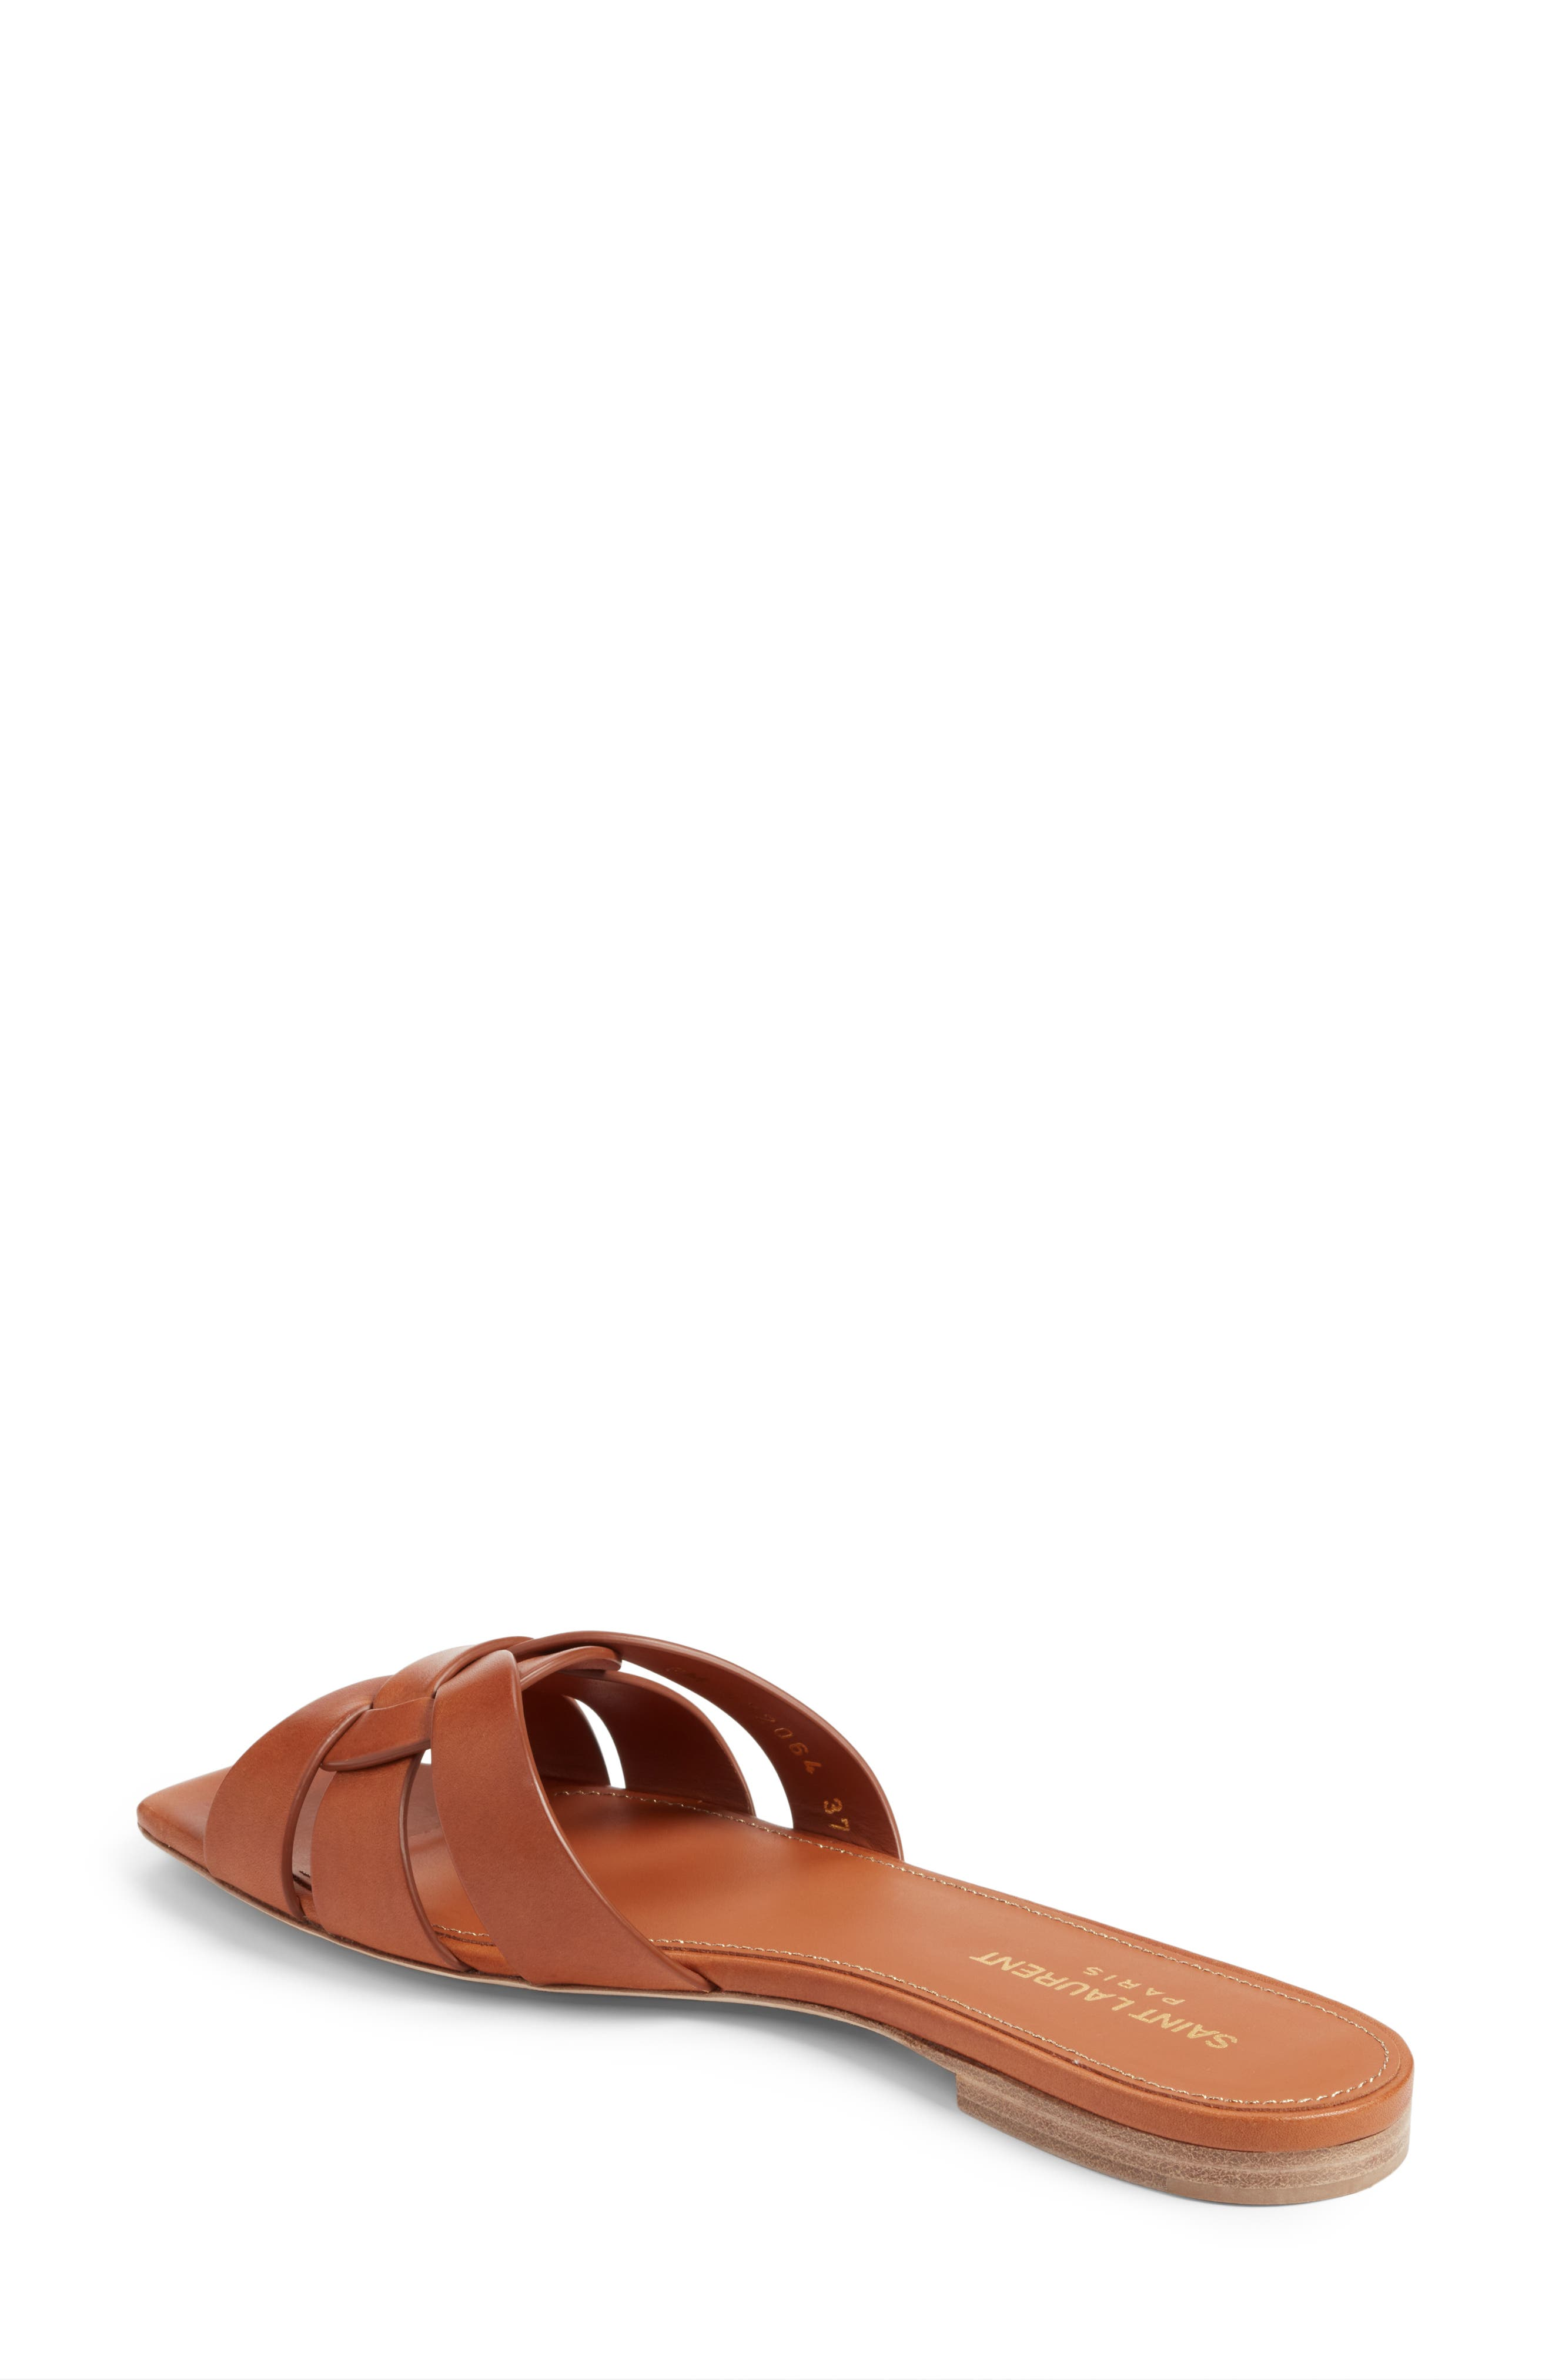 b4de1a700f383 Women s Saint Laurent Sandals